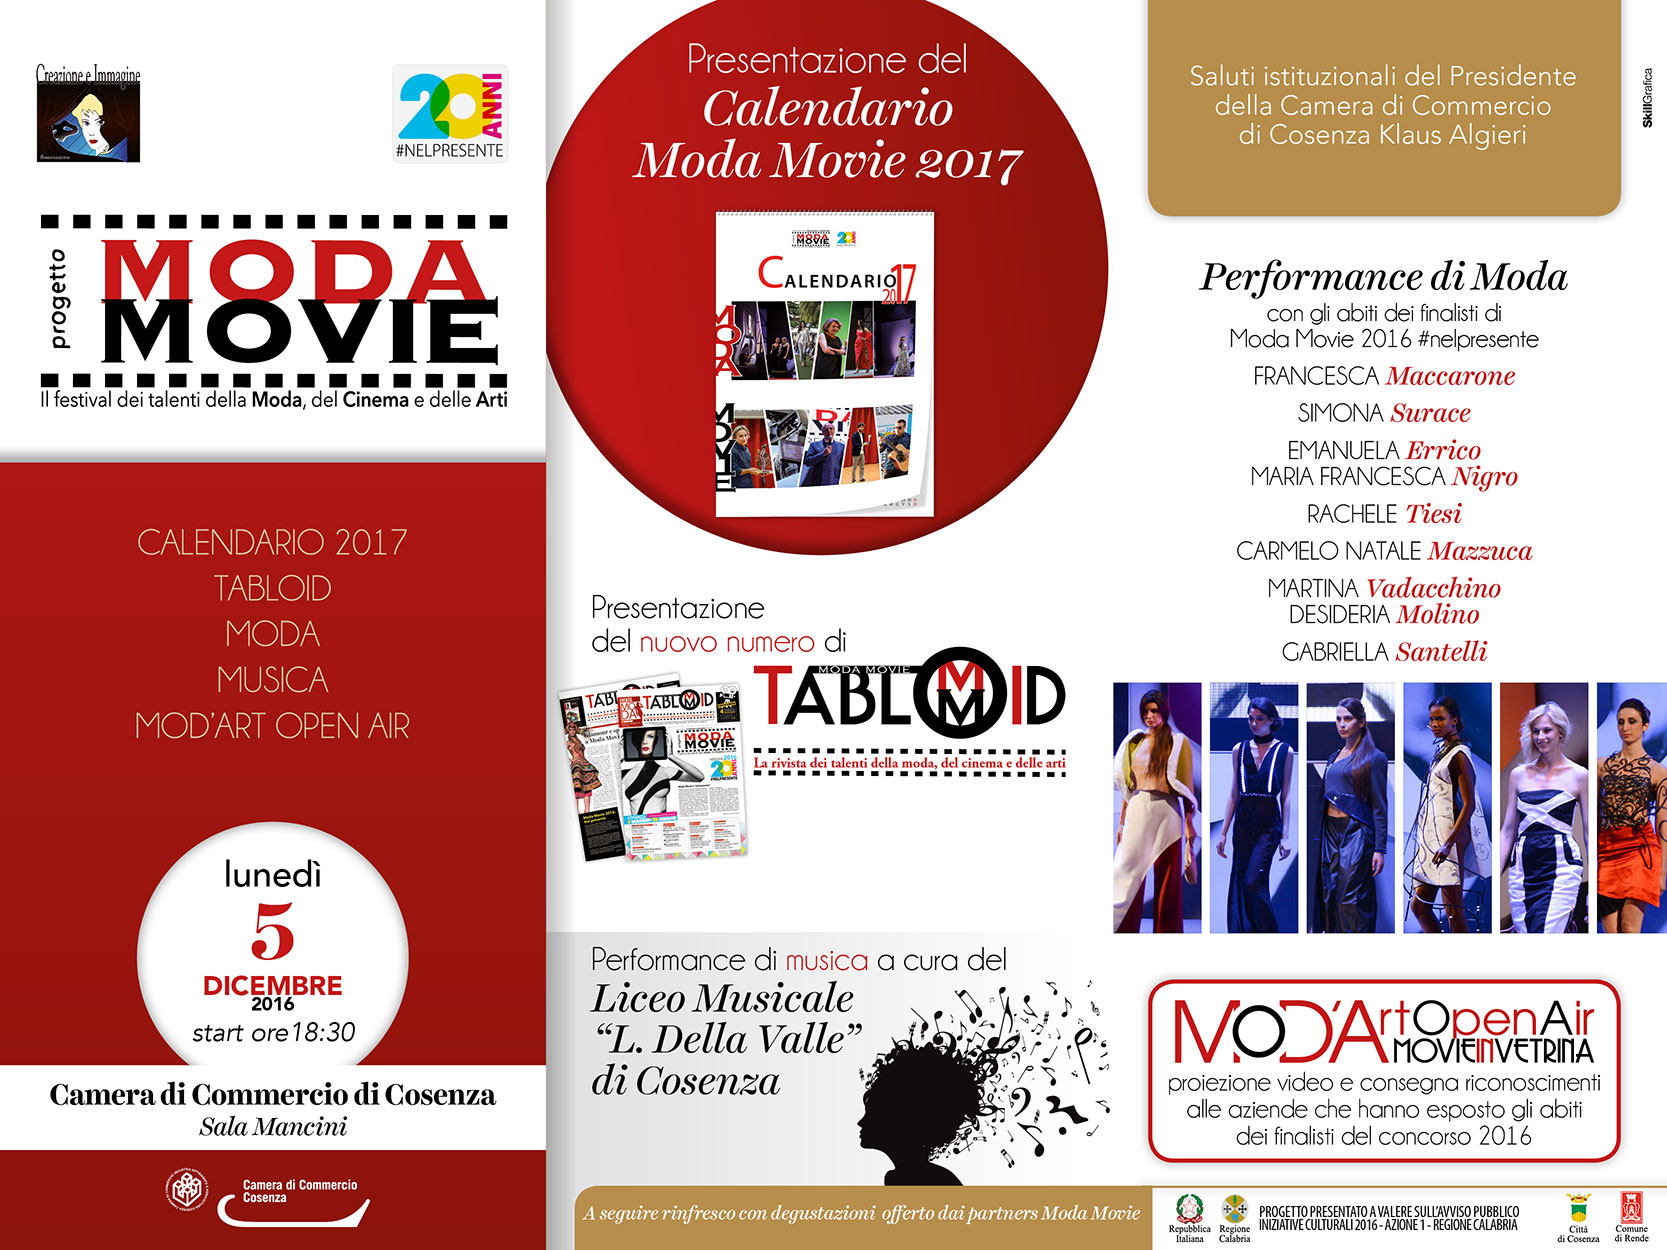 Cosenza, Moda Movie, presentazione del calendario 2017